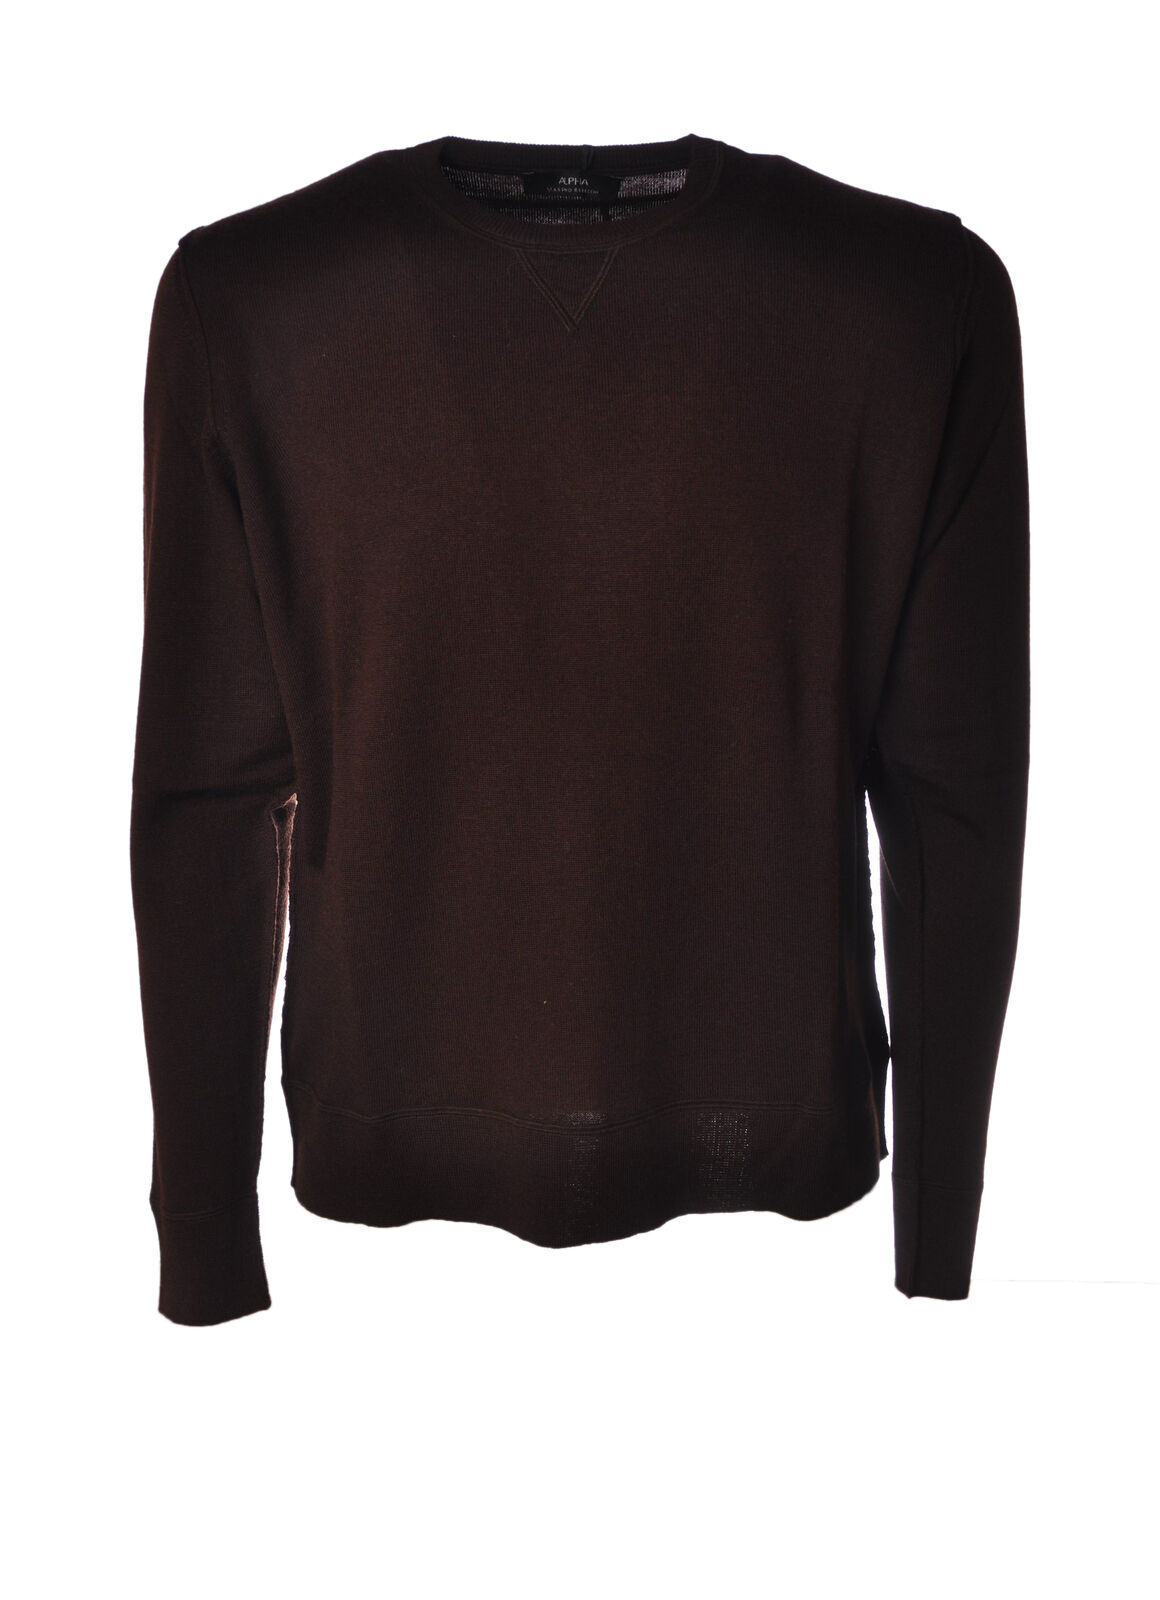 Alpha  -  Sweaters - Male - Brown - 4571522A181424